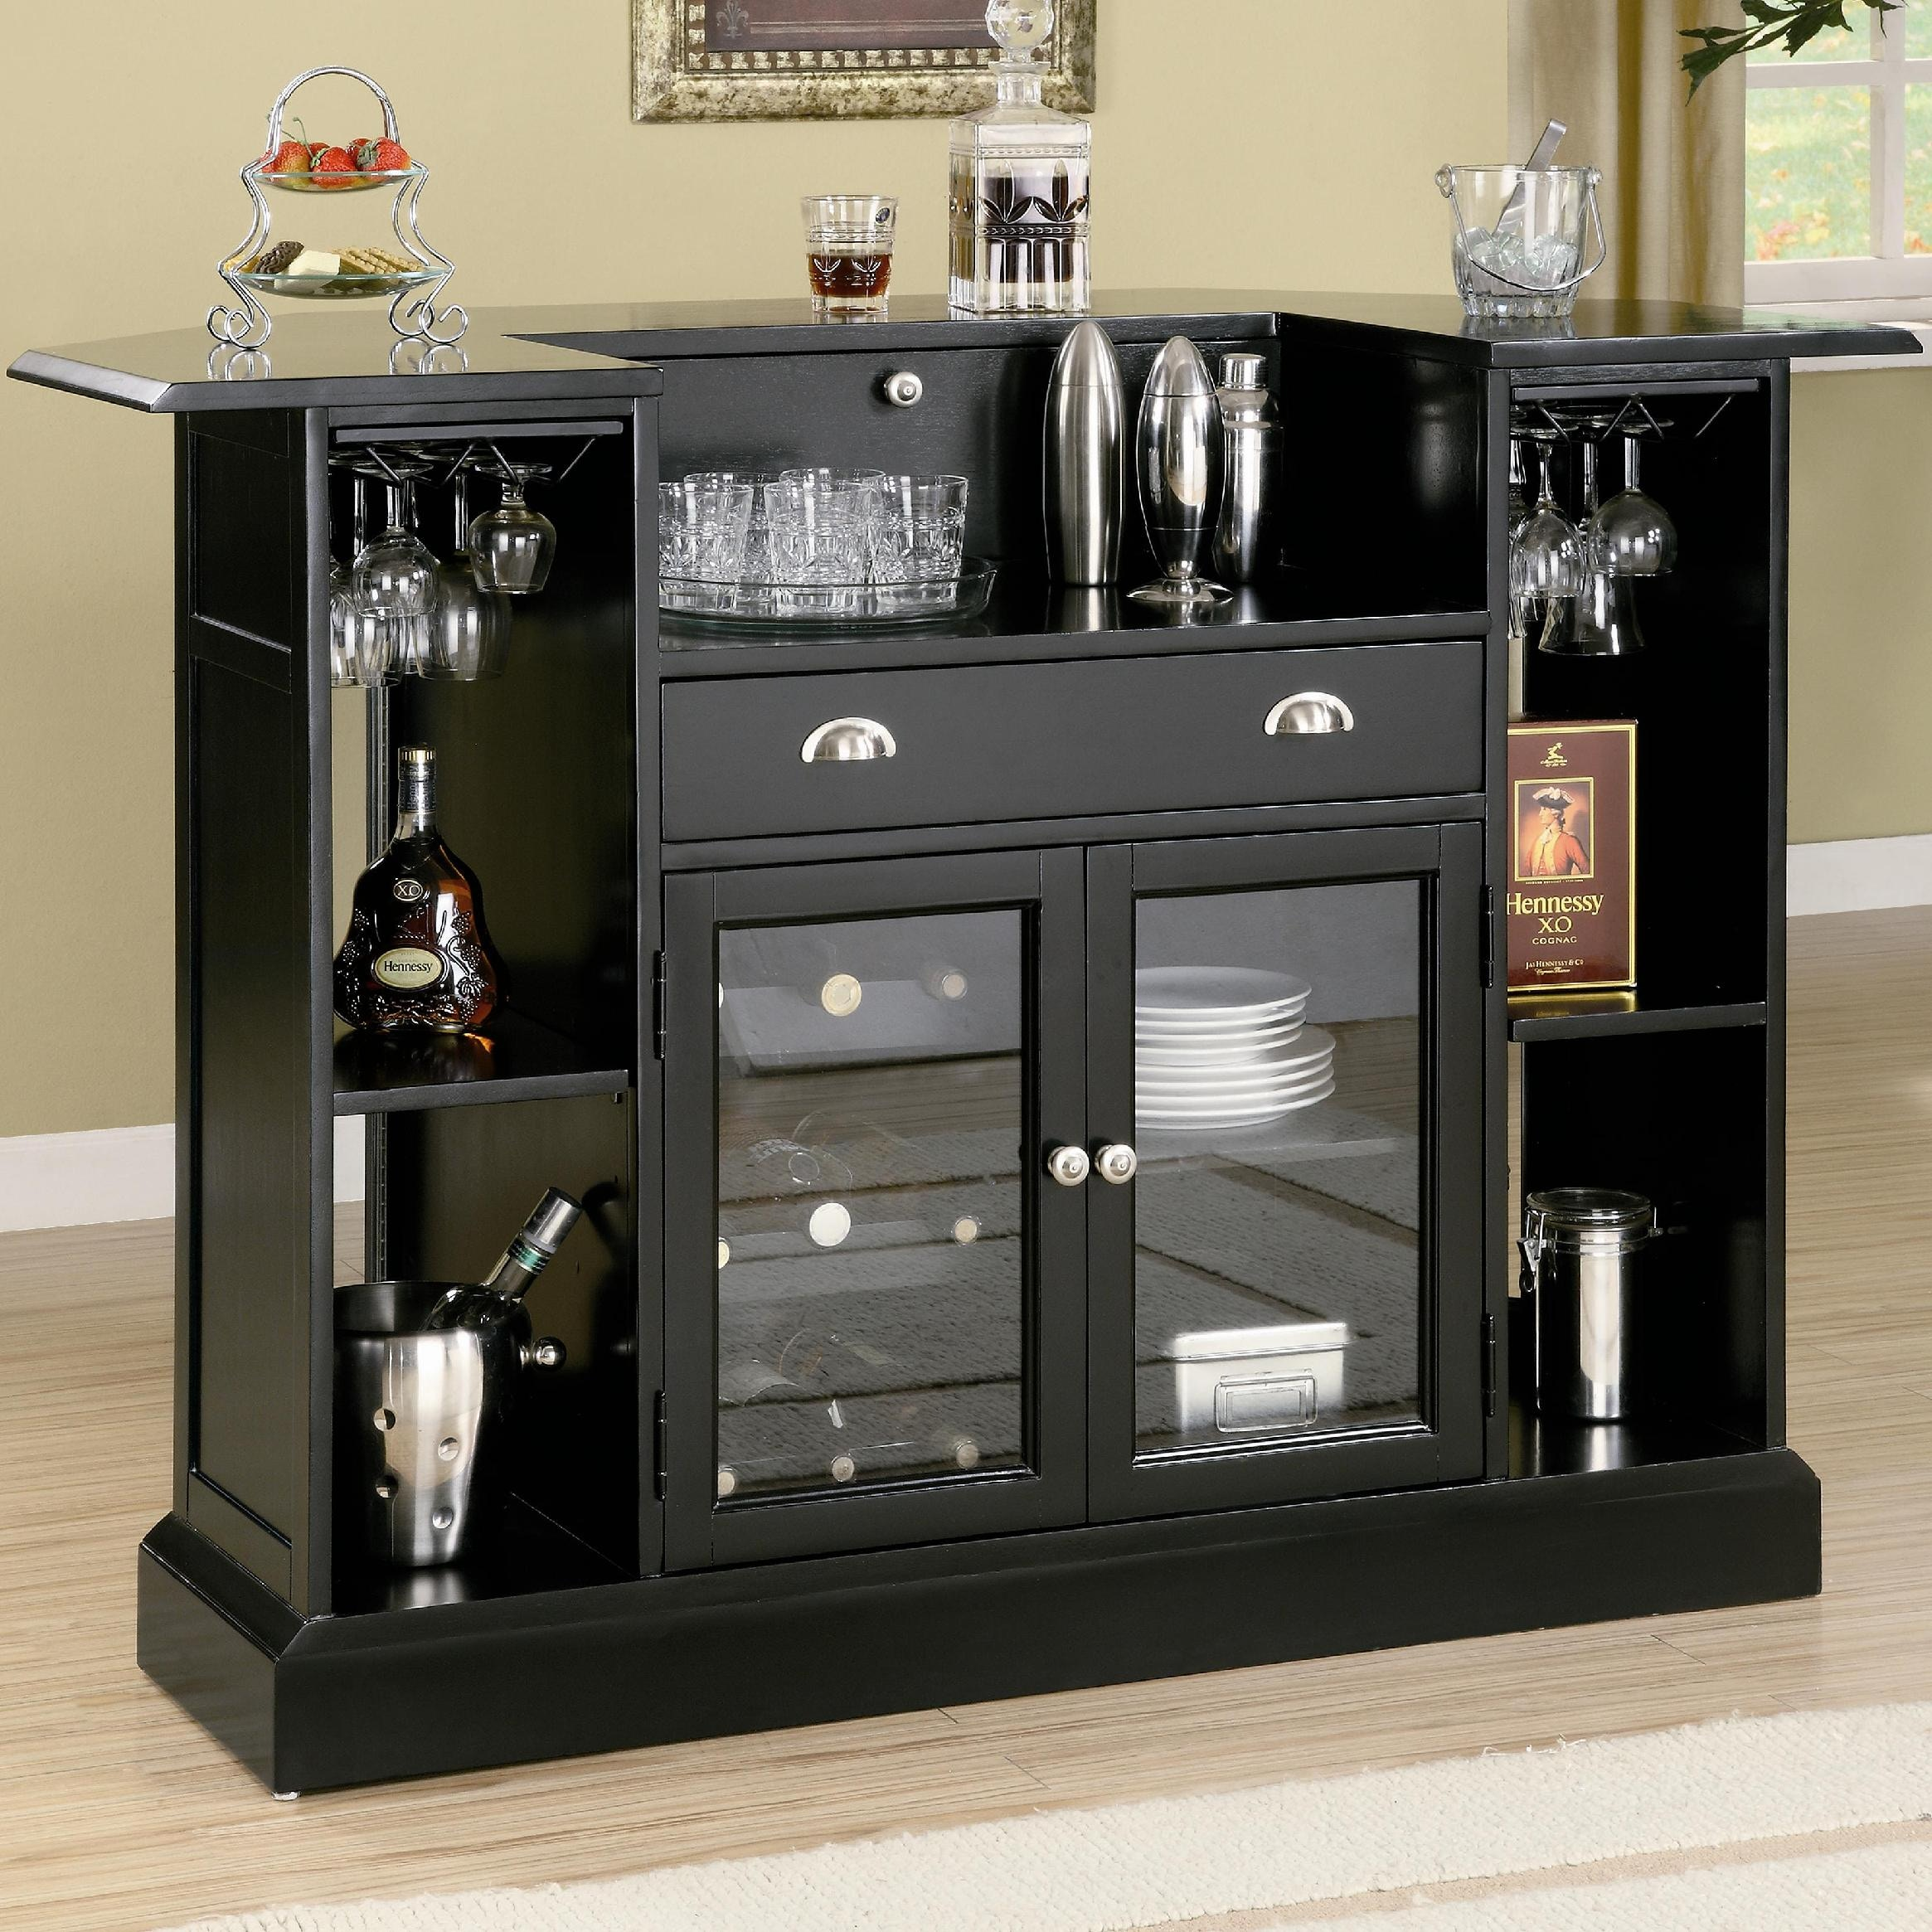 Coaster Inwood Contemporary Bar With Wine Rack And Stemware Storage 100175